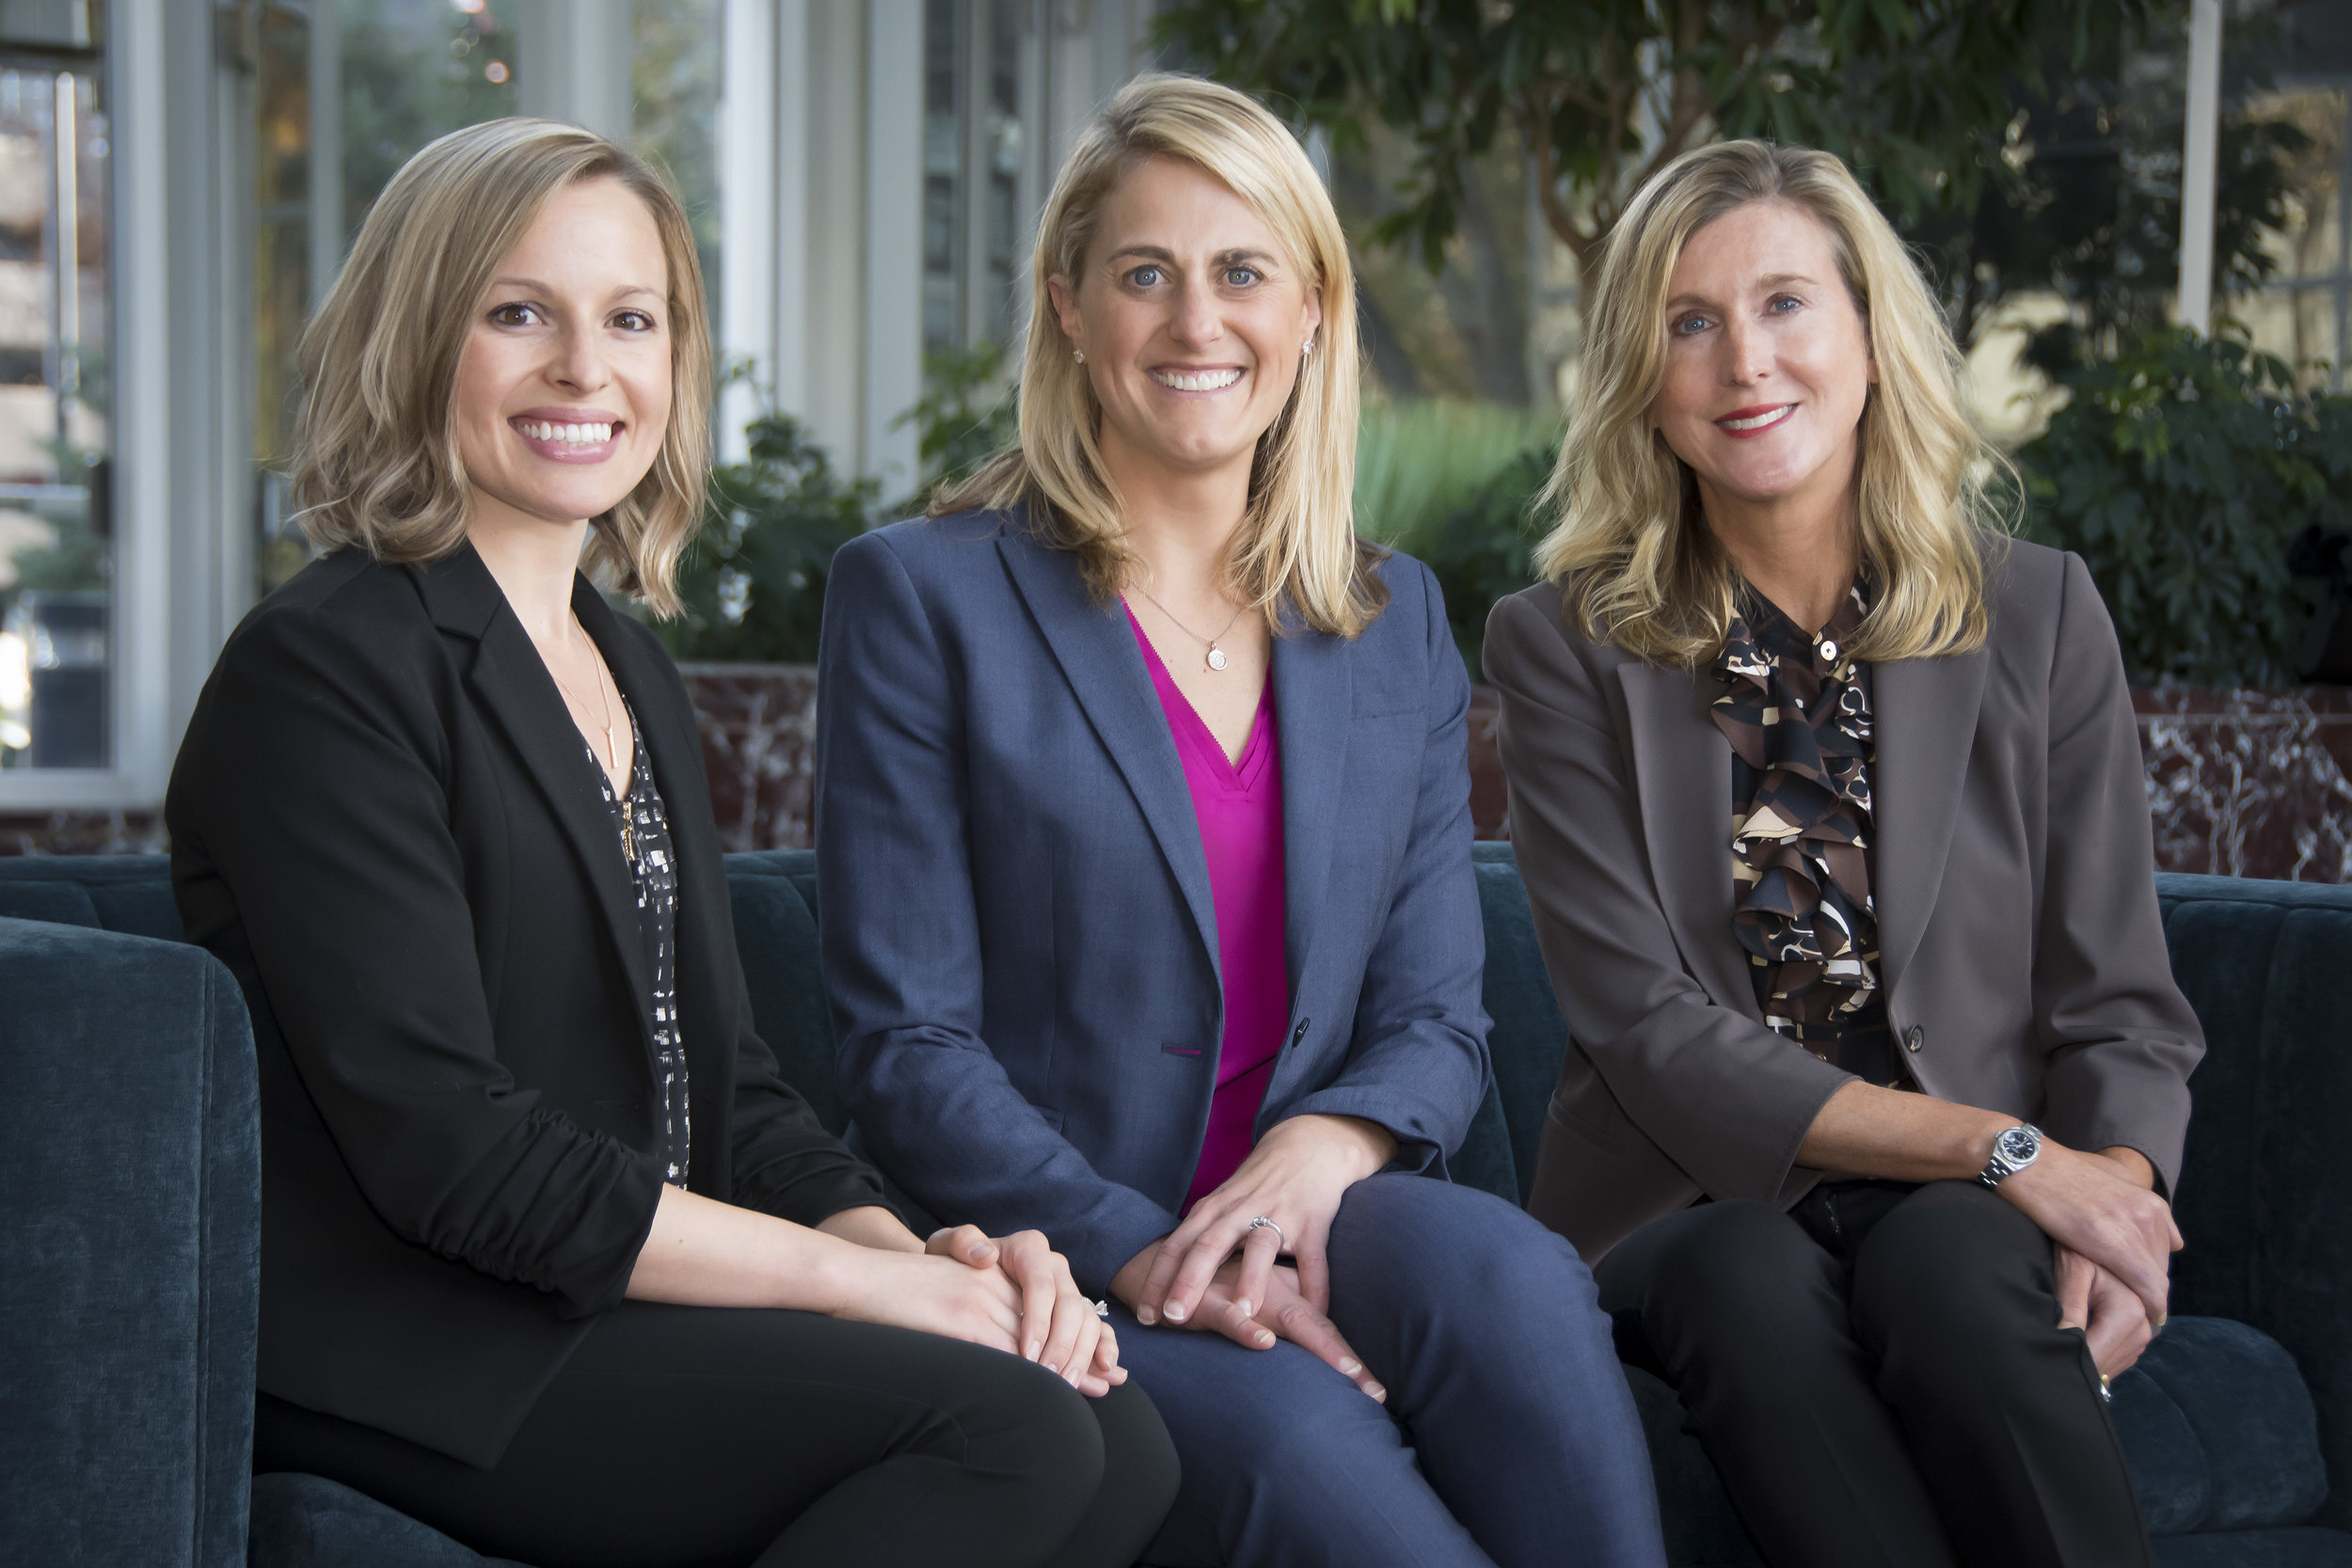 Our team of advisors: Jenna Witherbee, Jessica Ballin and Gina Buchholz